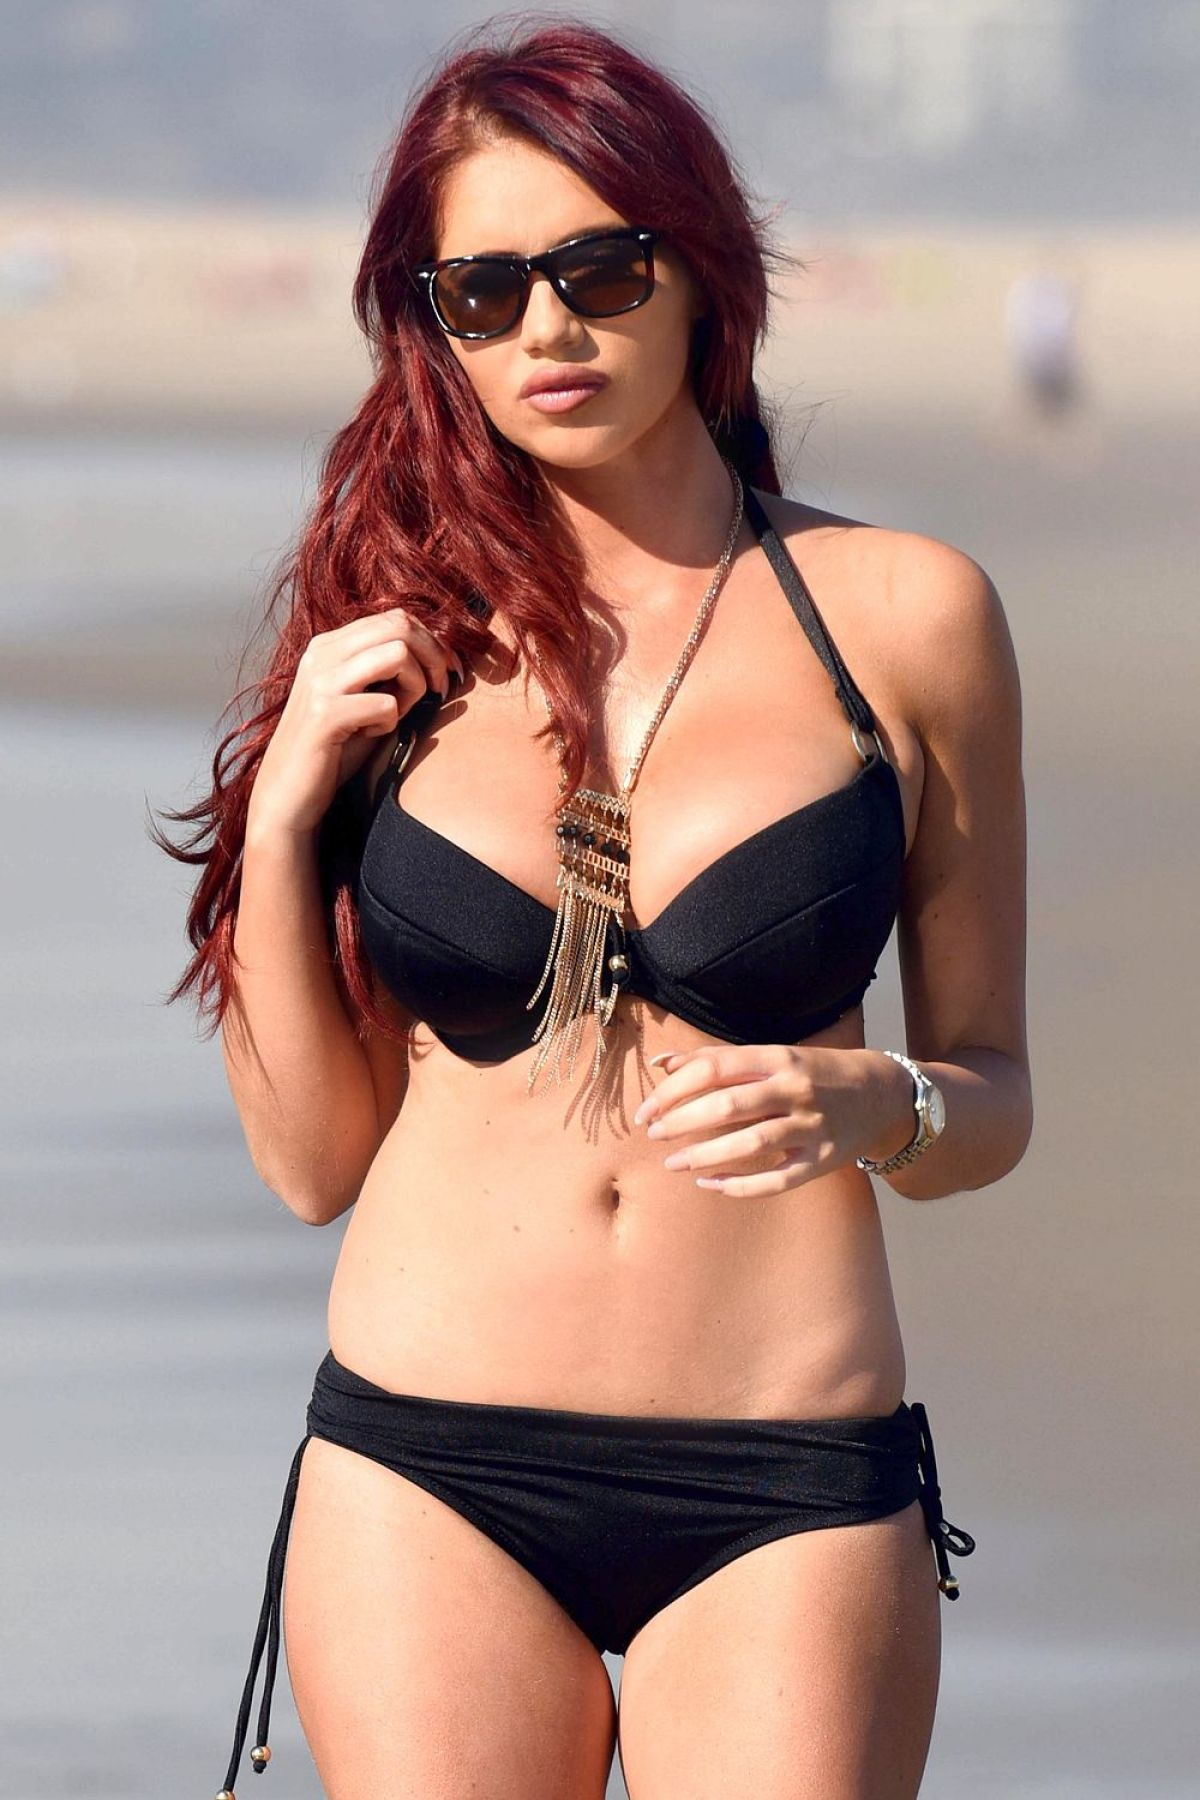 Amy Childs In A Black Bikini On Venice Beach